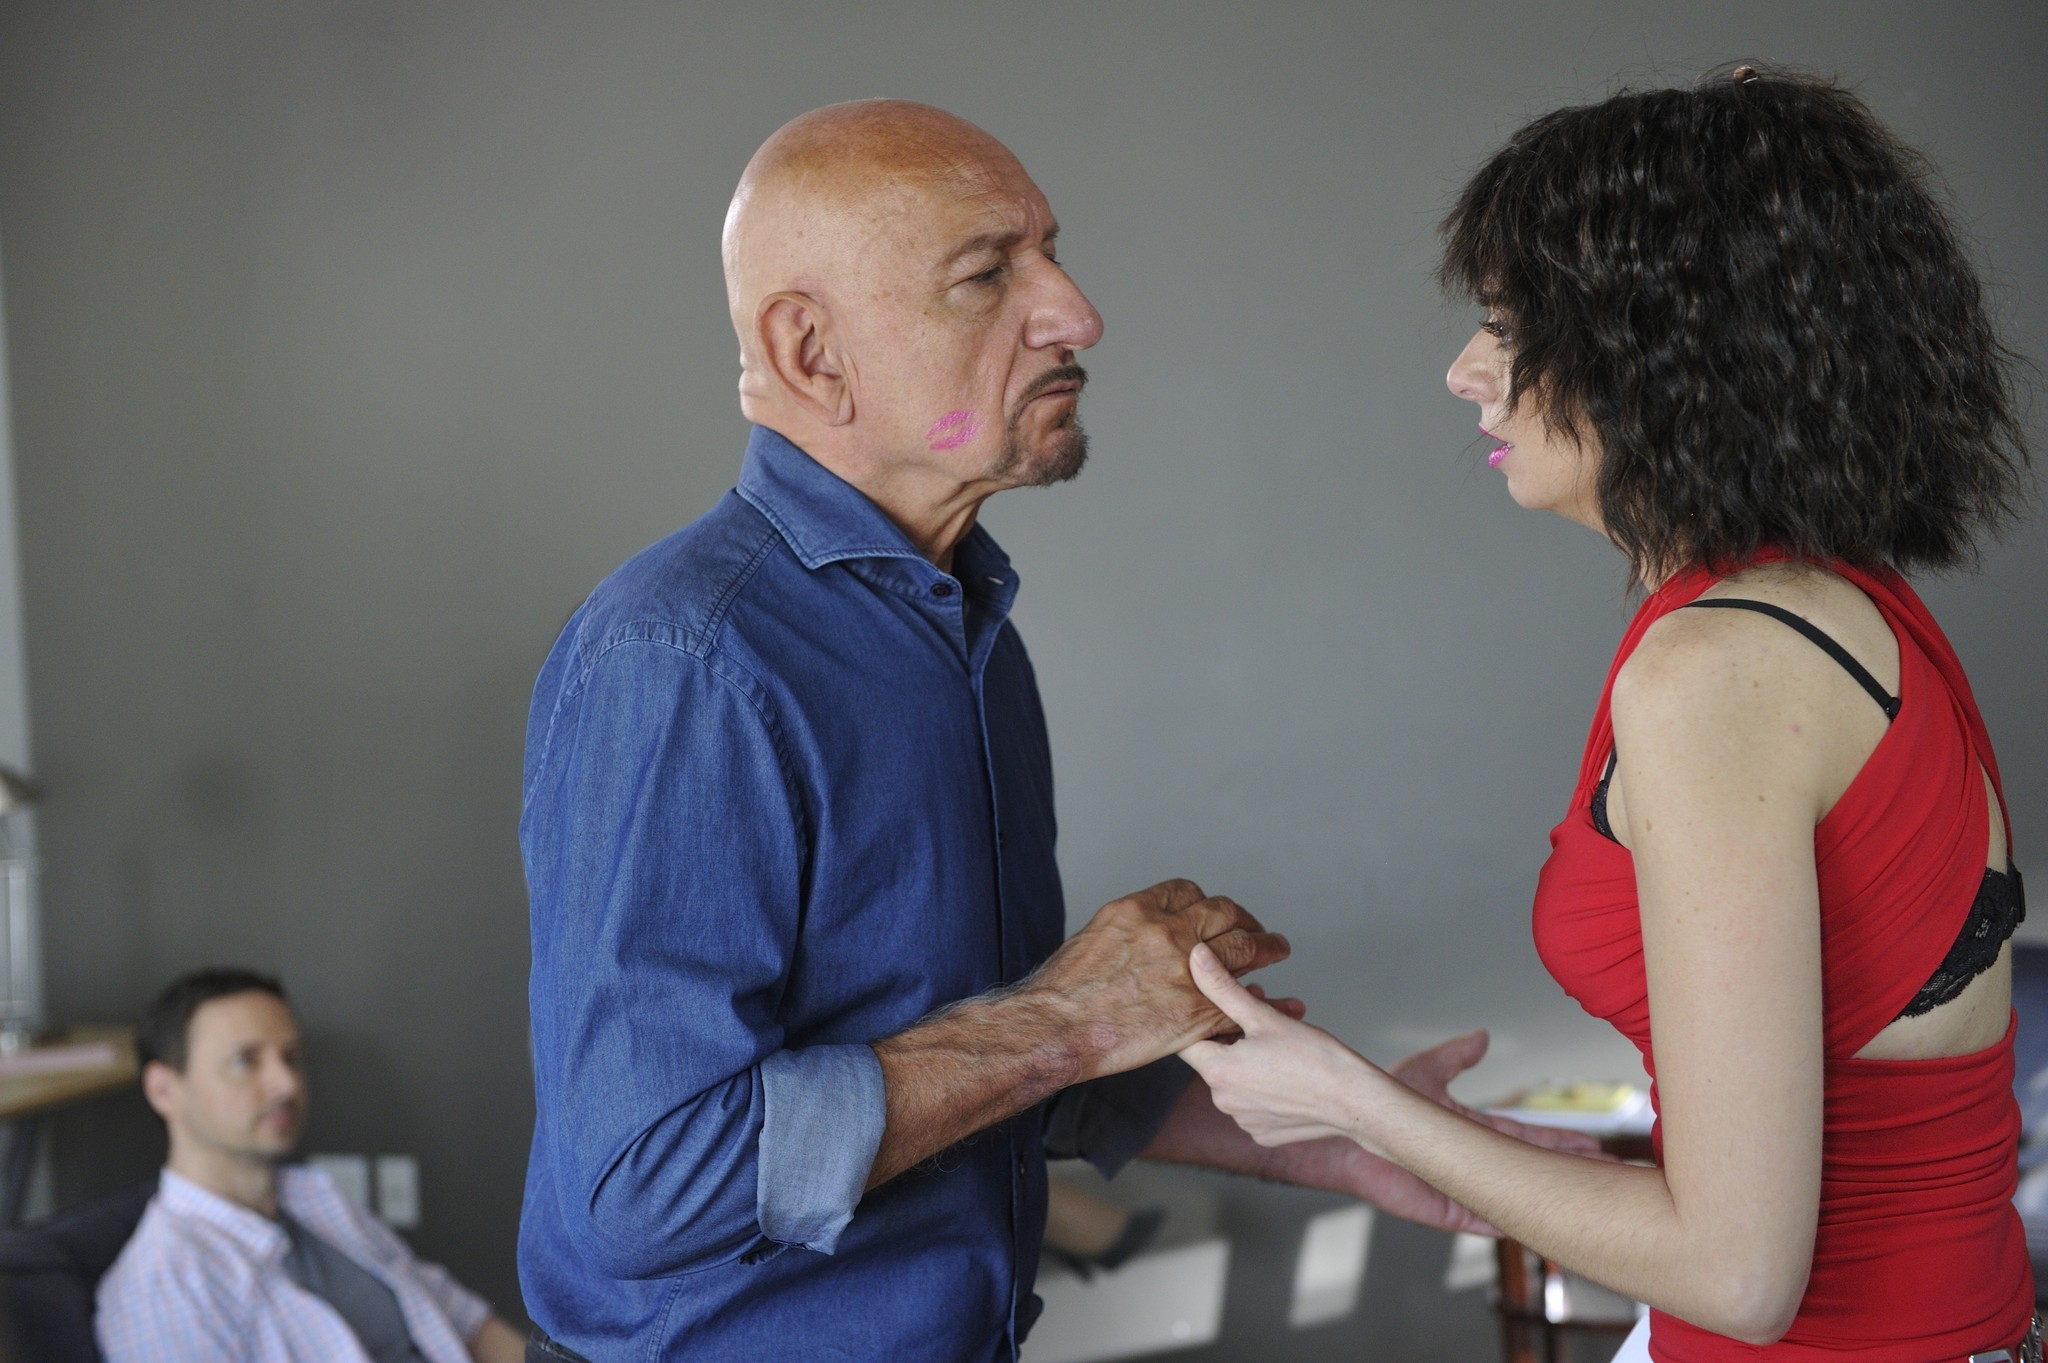 Garfunkel and Oates: Ben Kingsley e Kate Micucci nell'episodio The Fadeaway